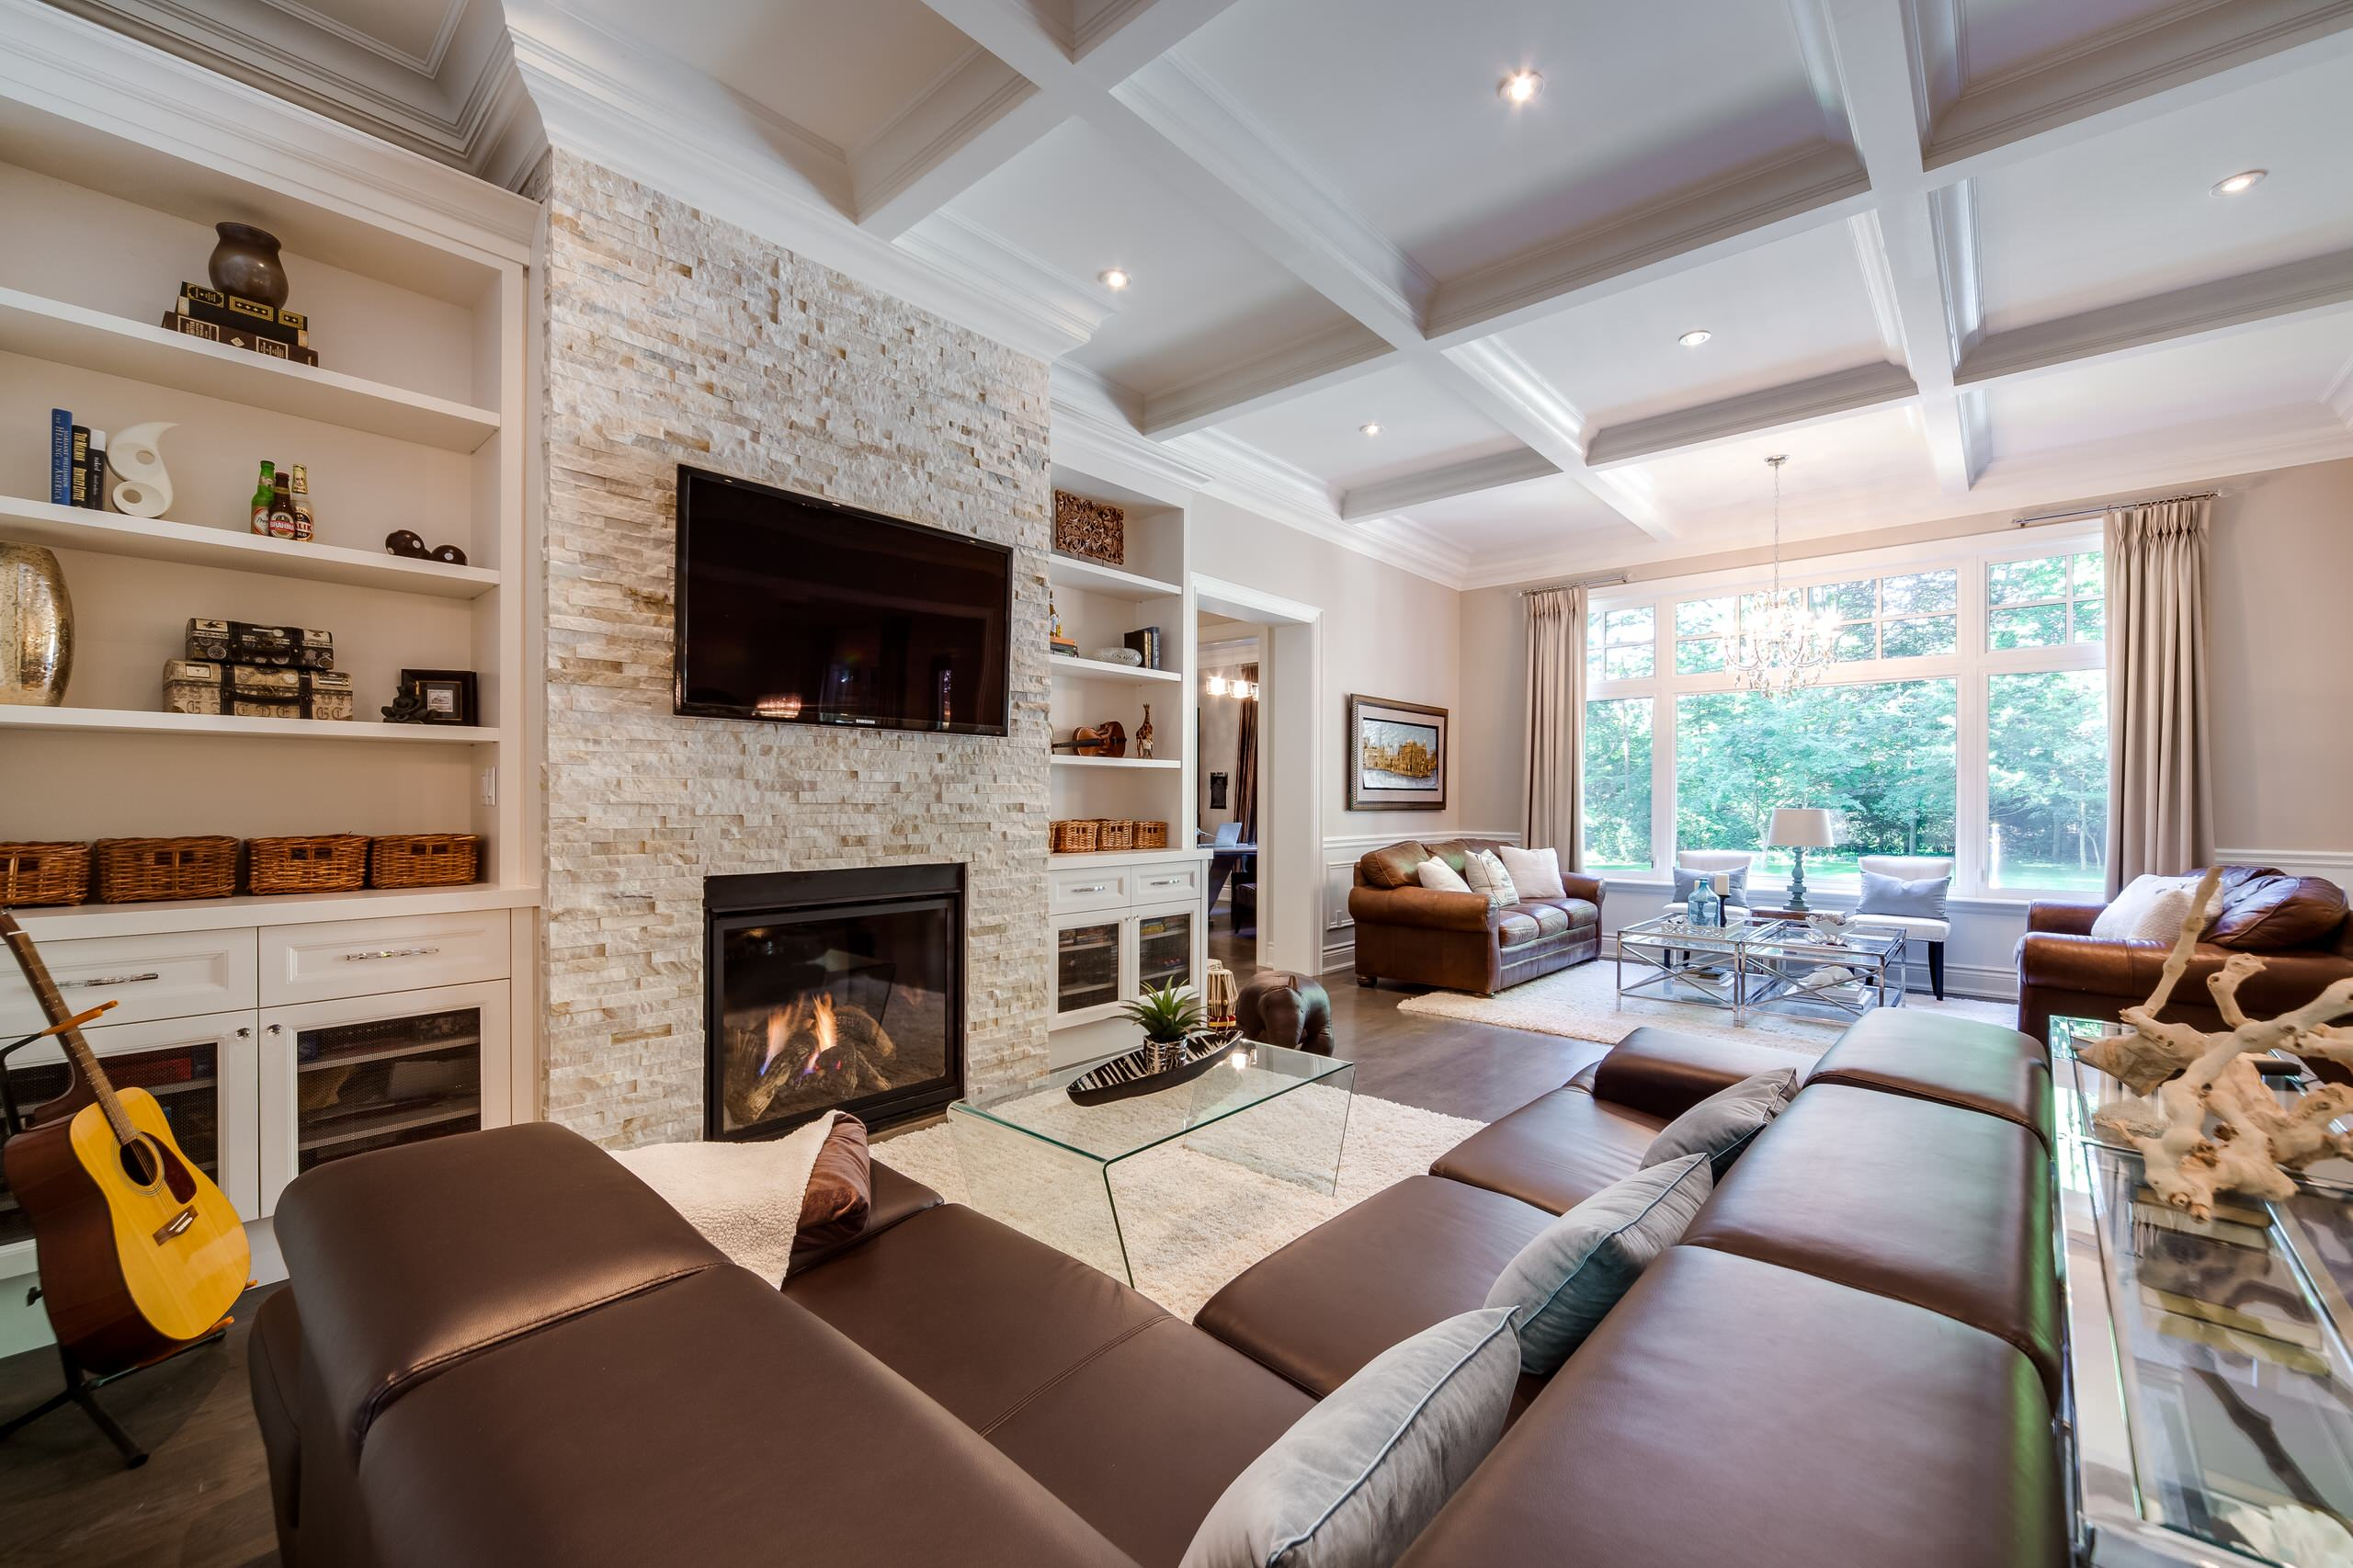 stone tv fireplace ideas cozy country cottage built in bookshelves bookshelf moulding living room waffle ceiling with pot lights leather couches